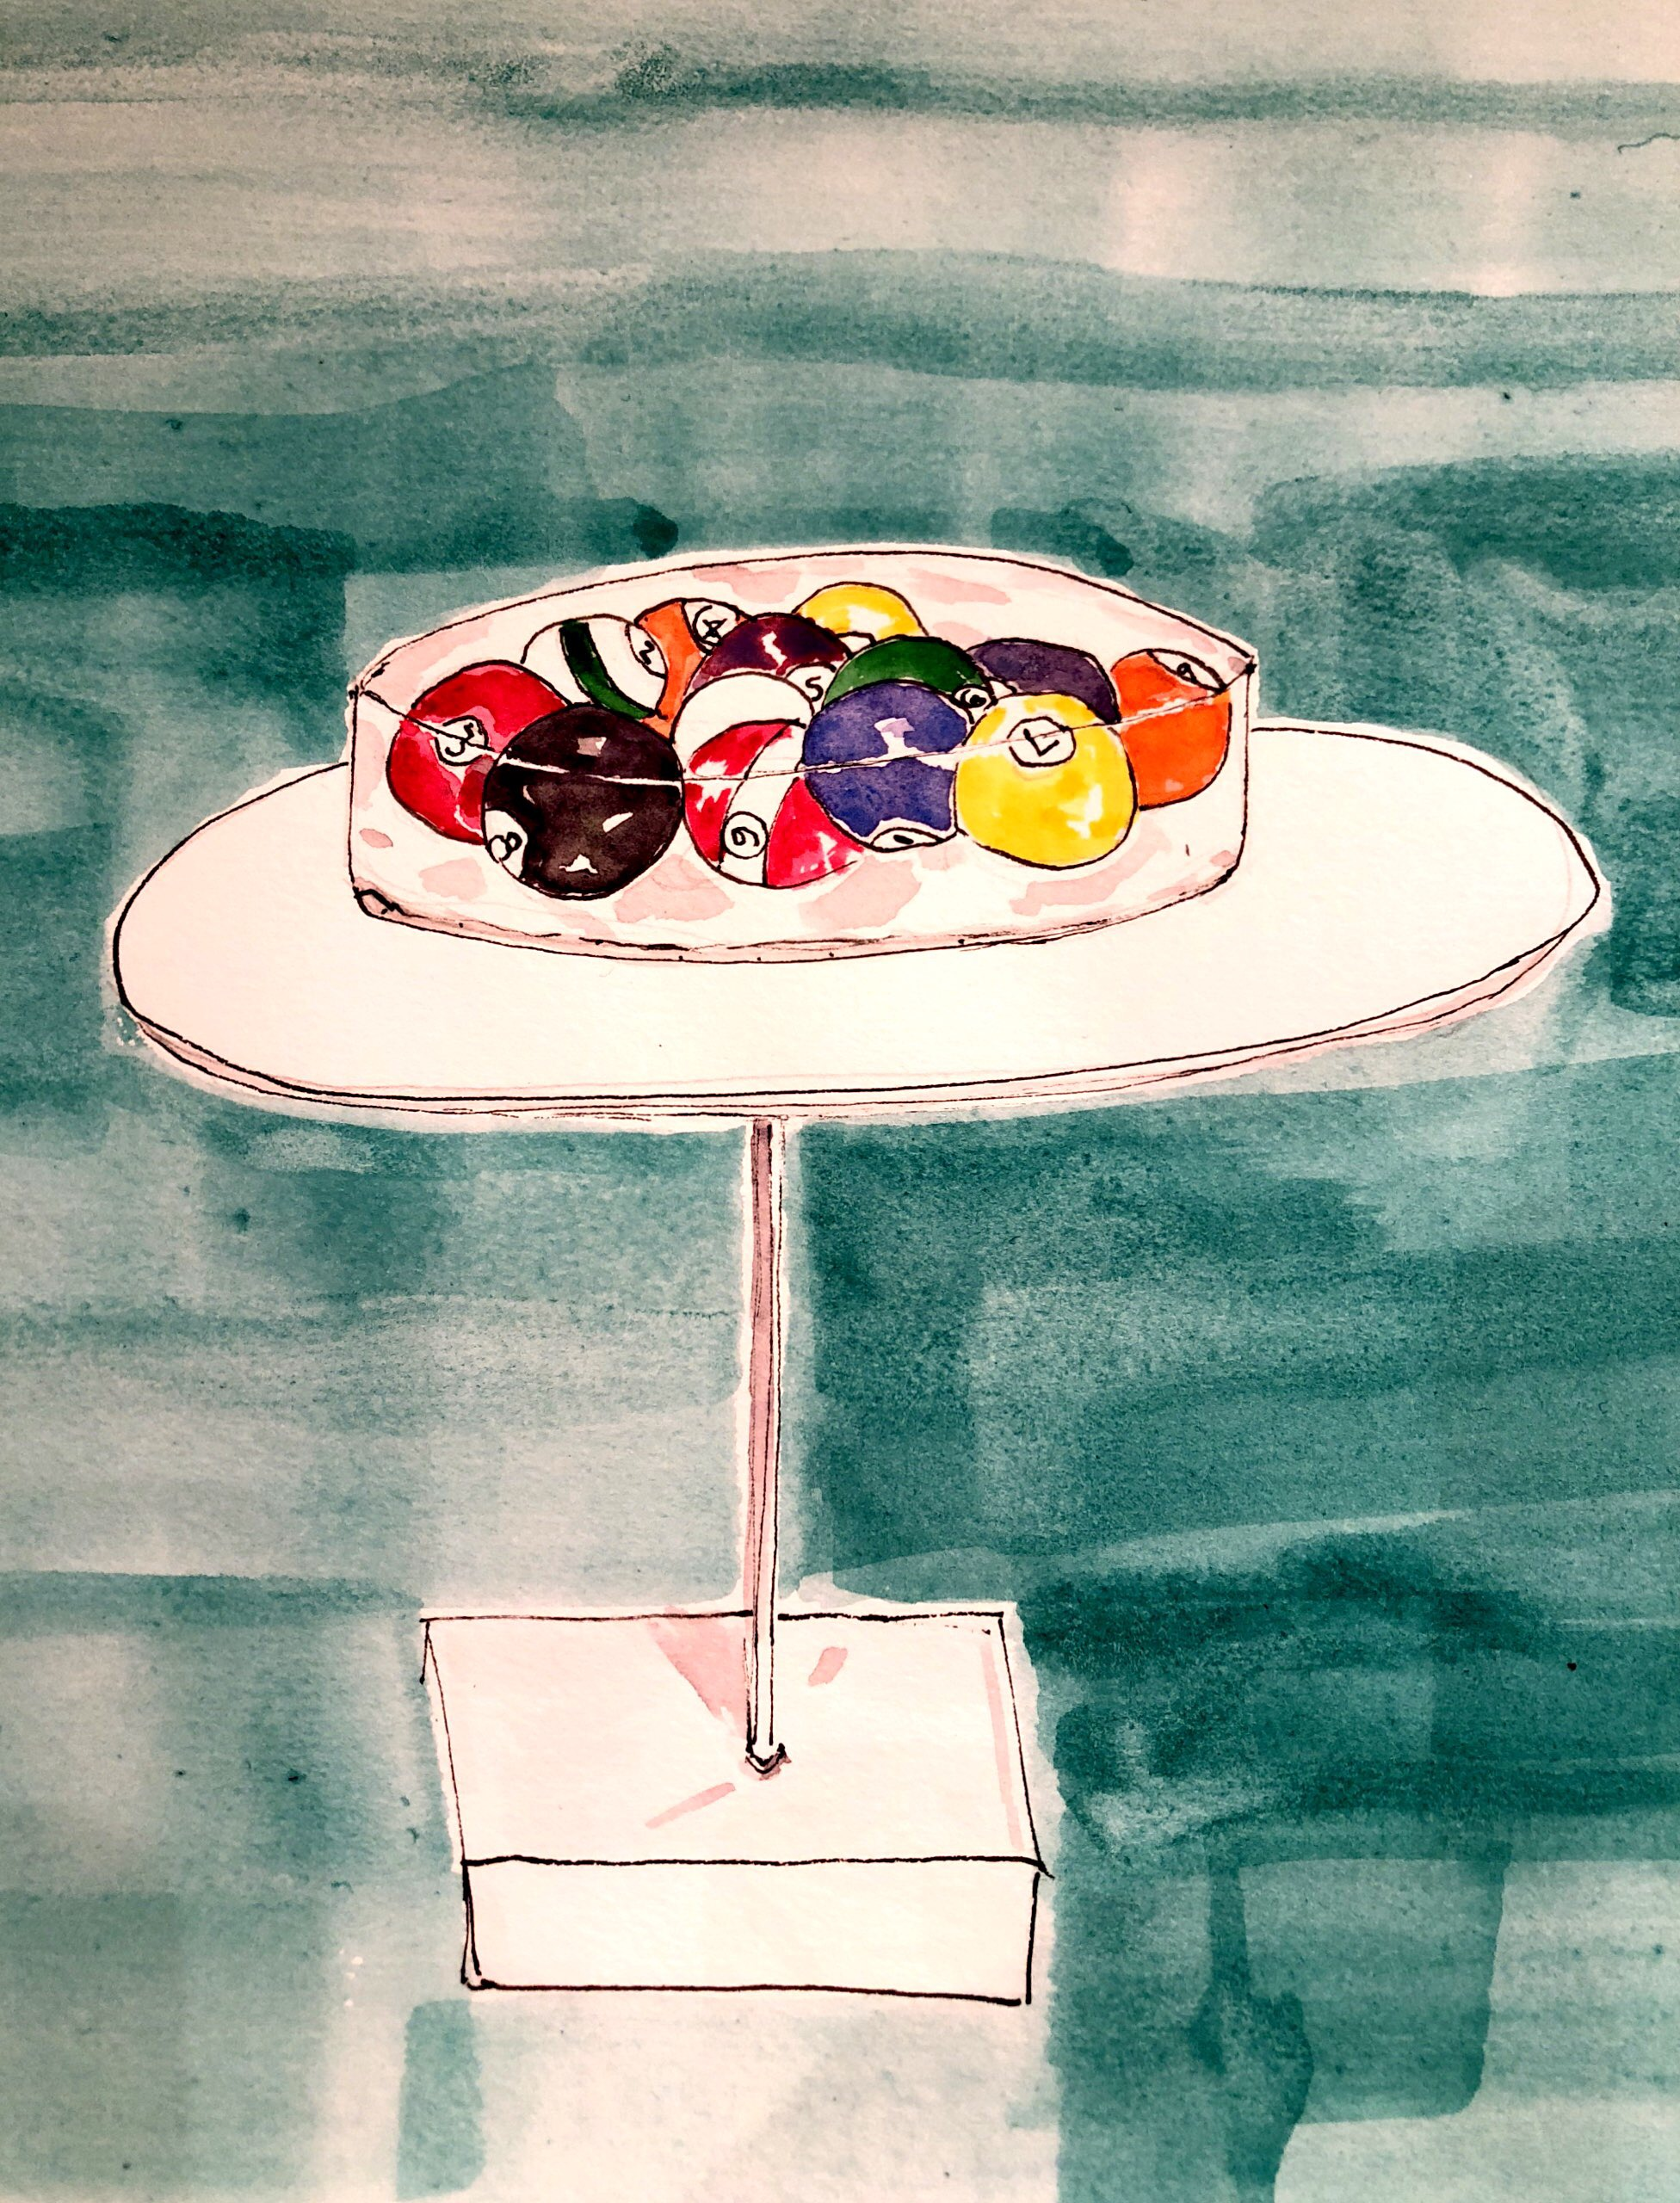 Billiard balls on display - drawing by Lisa Van Dusen